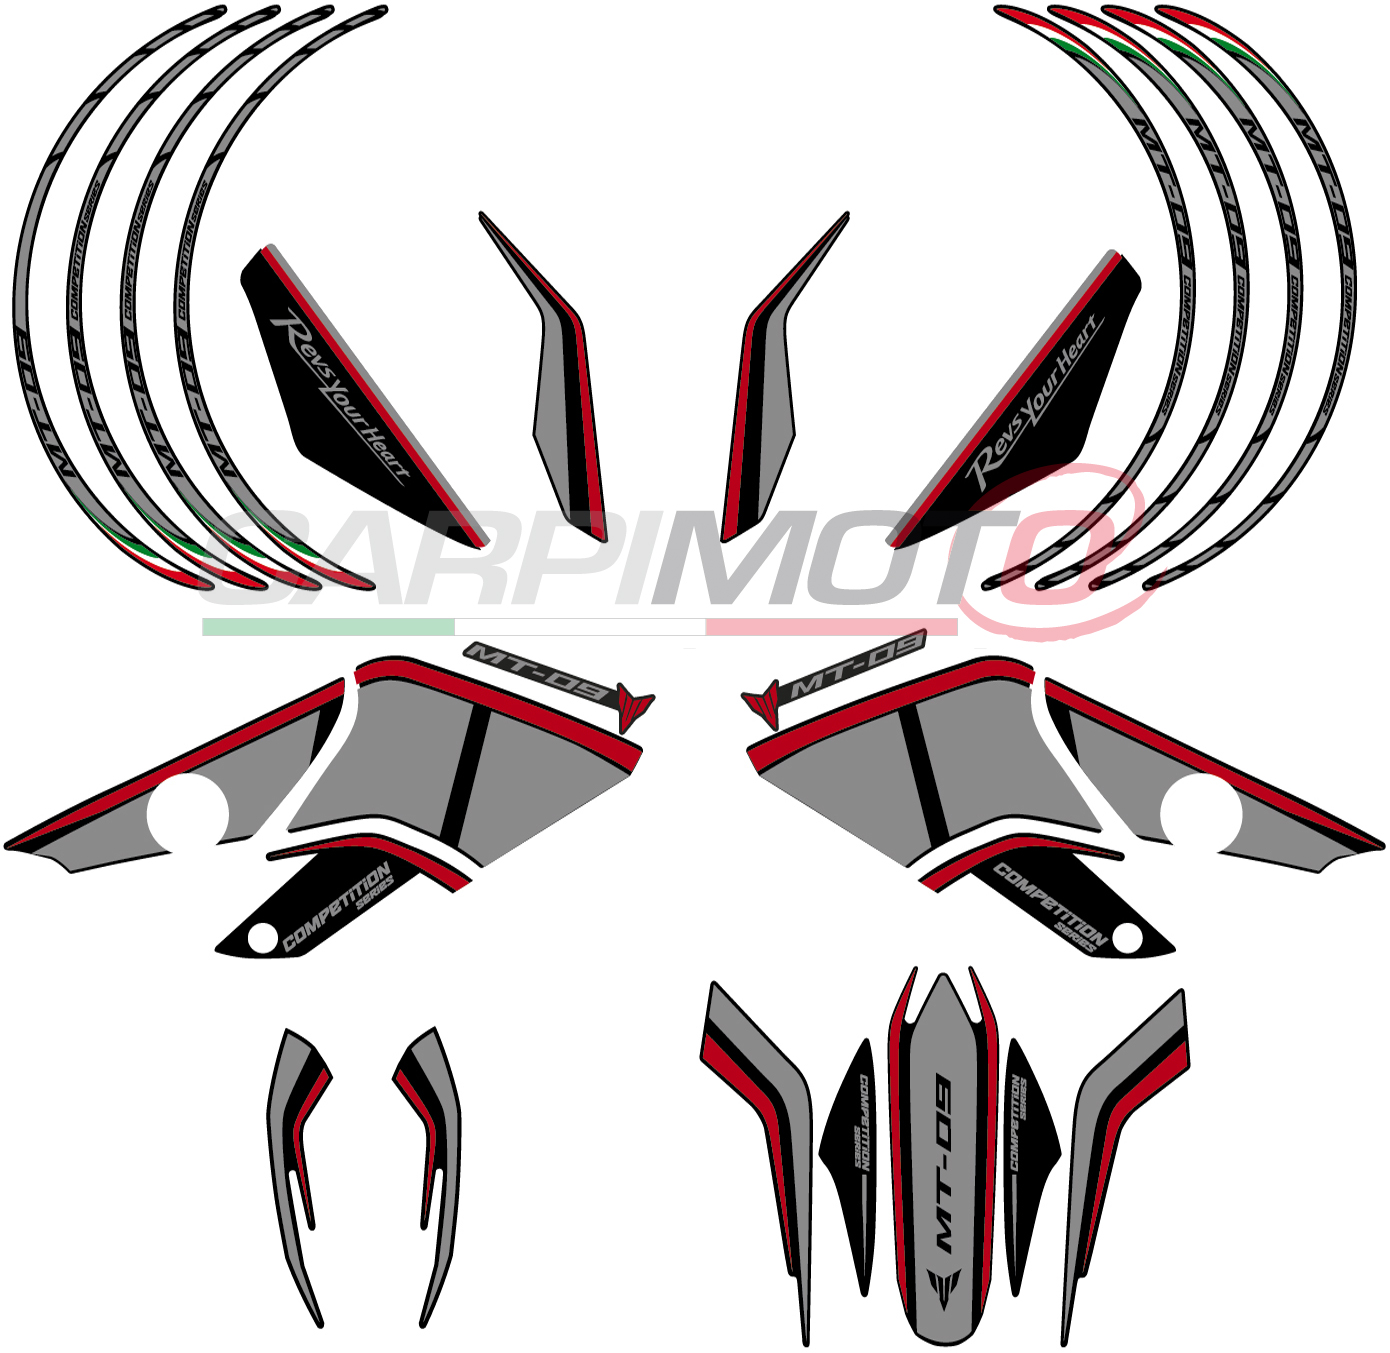 Complete stickers for yamaha mt 09 color grey red glossy finish